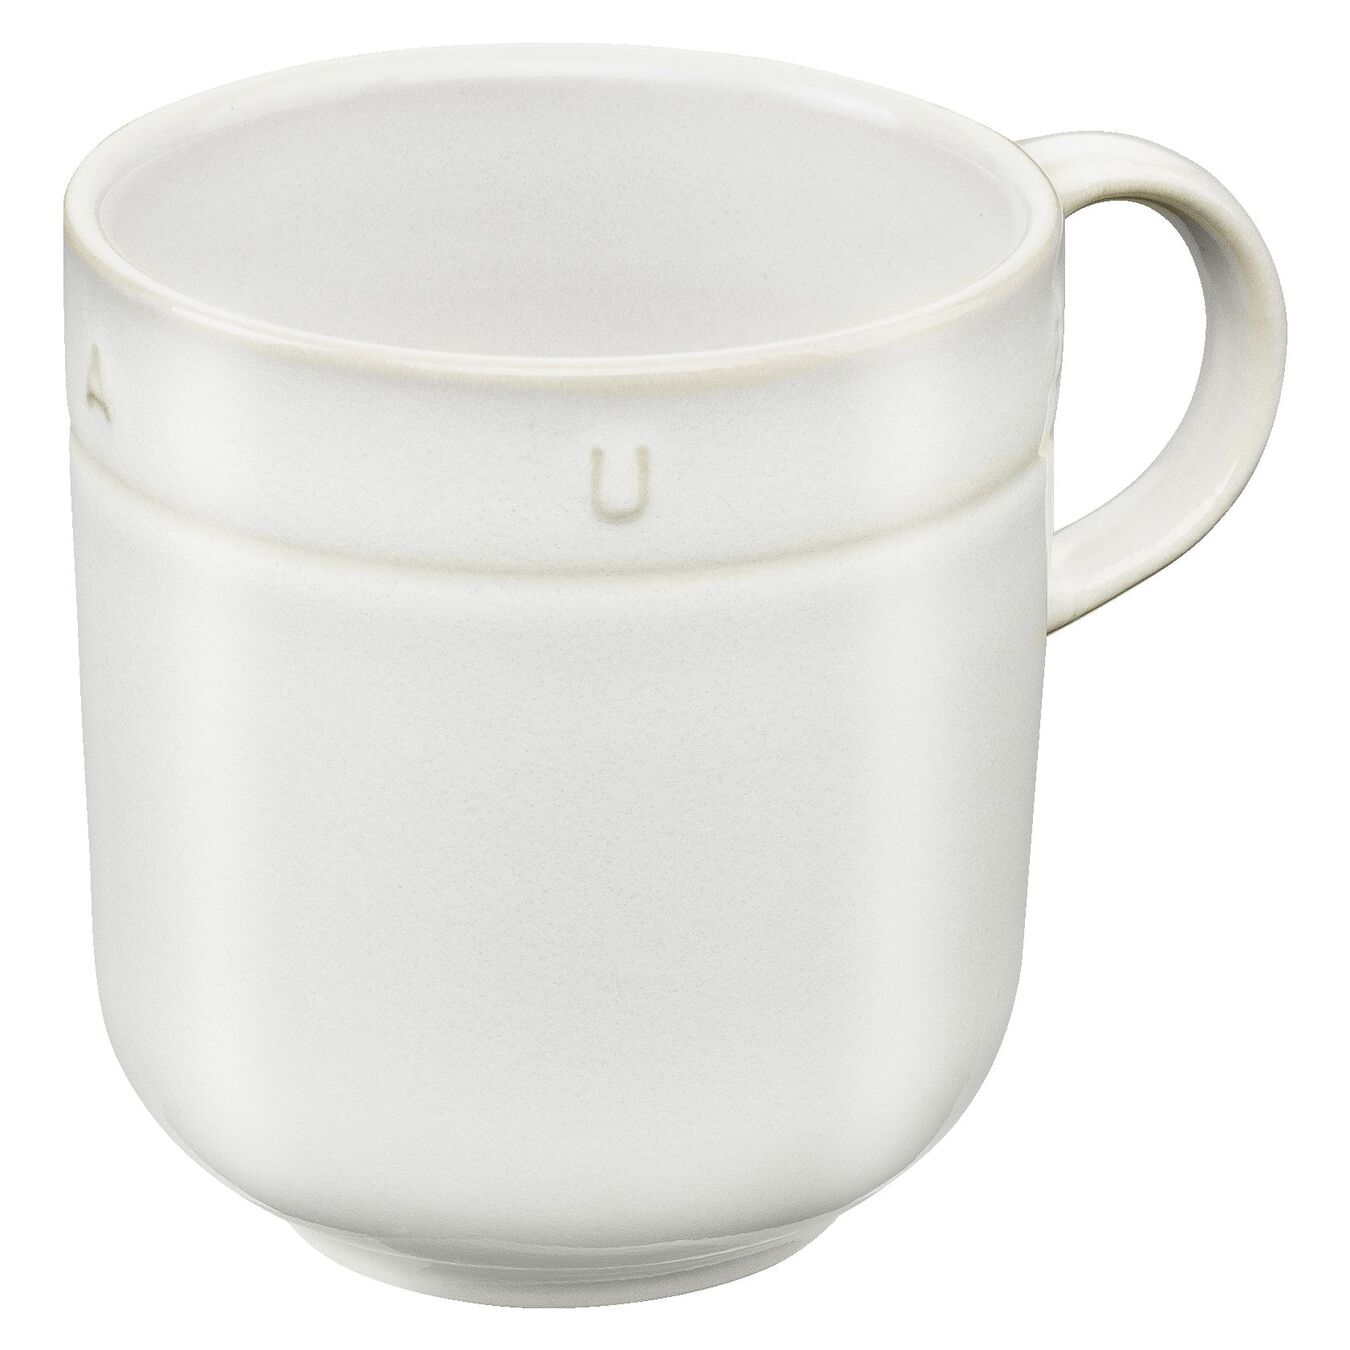 0.5 qt, Ceramic, Mug, off-white,,large 2